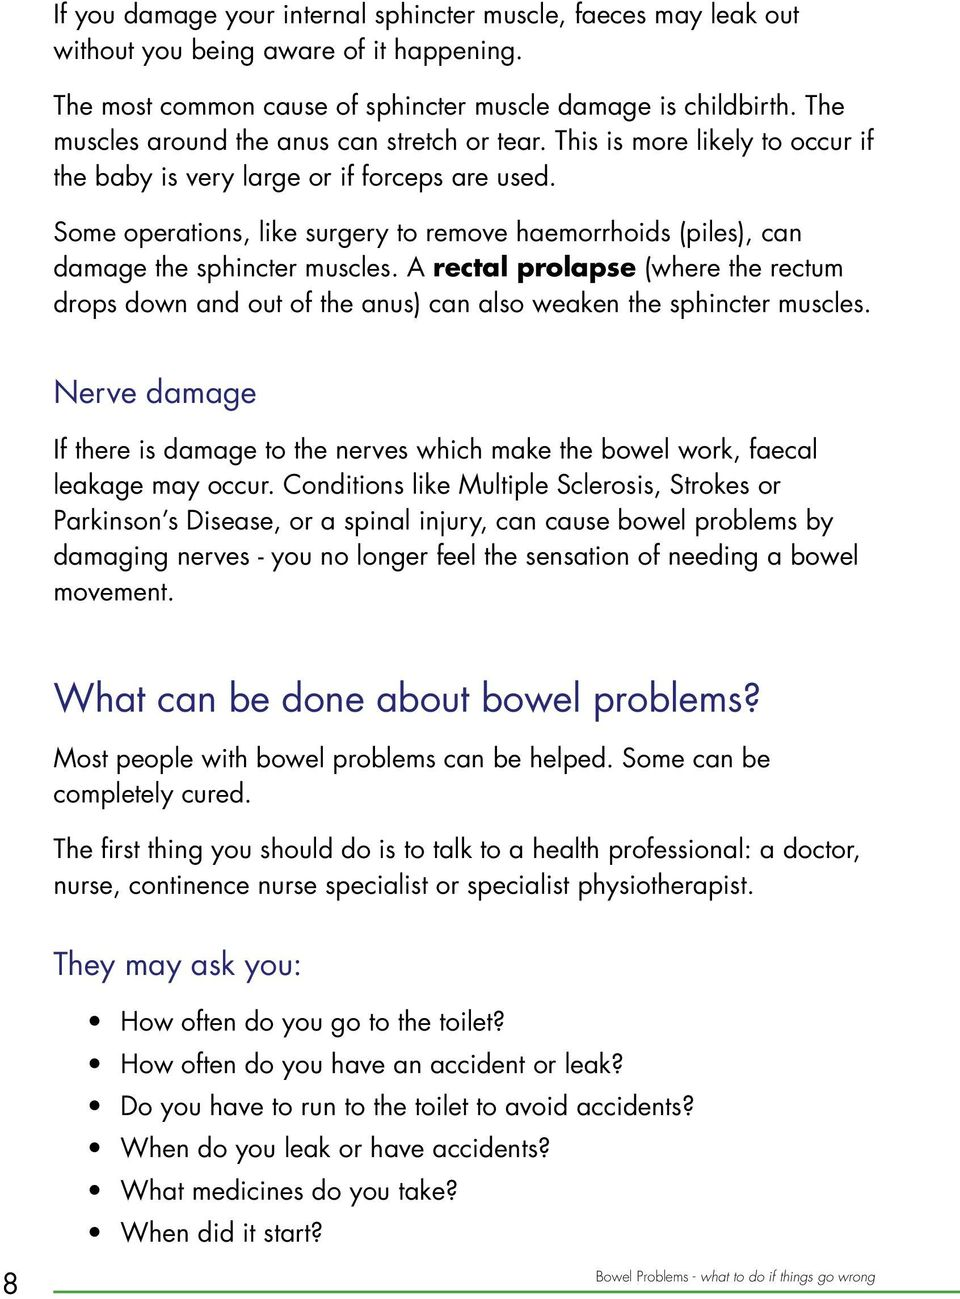 Bowel Problems  what to do if things go wrong  - PDF